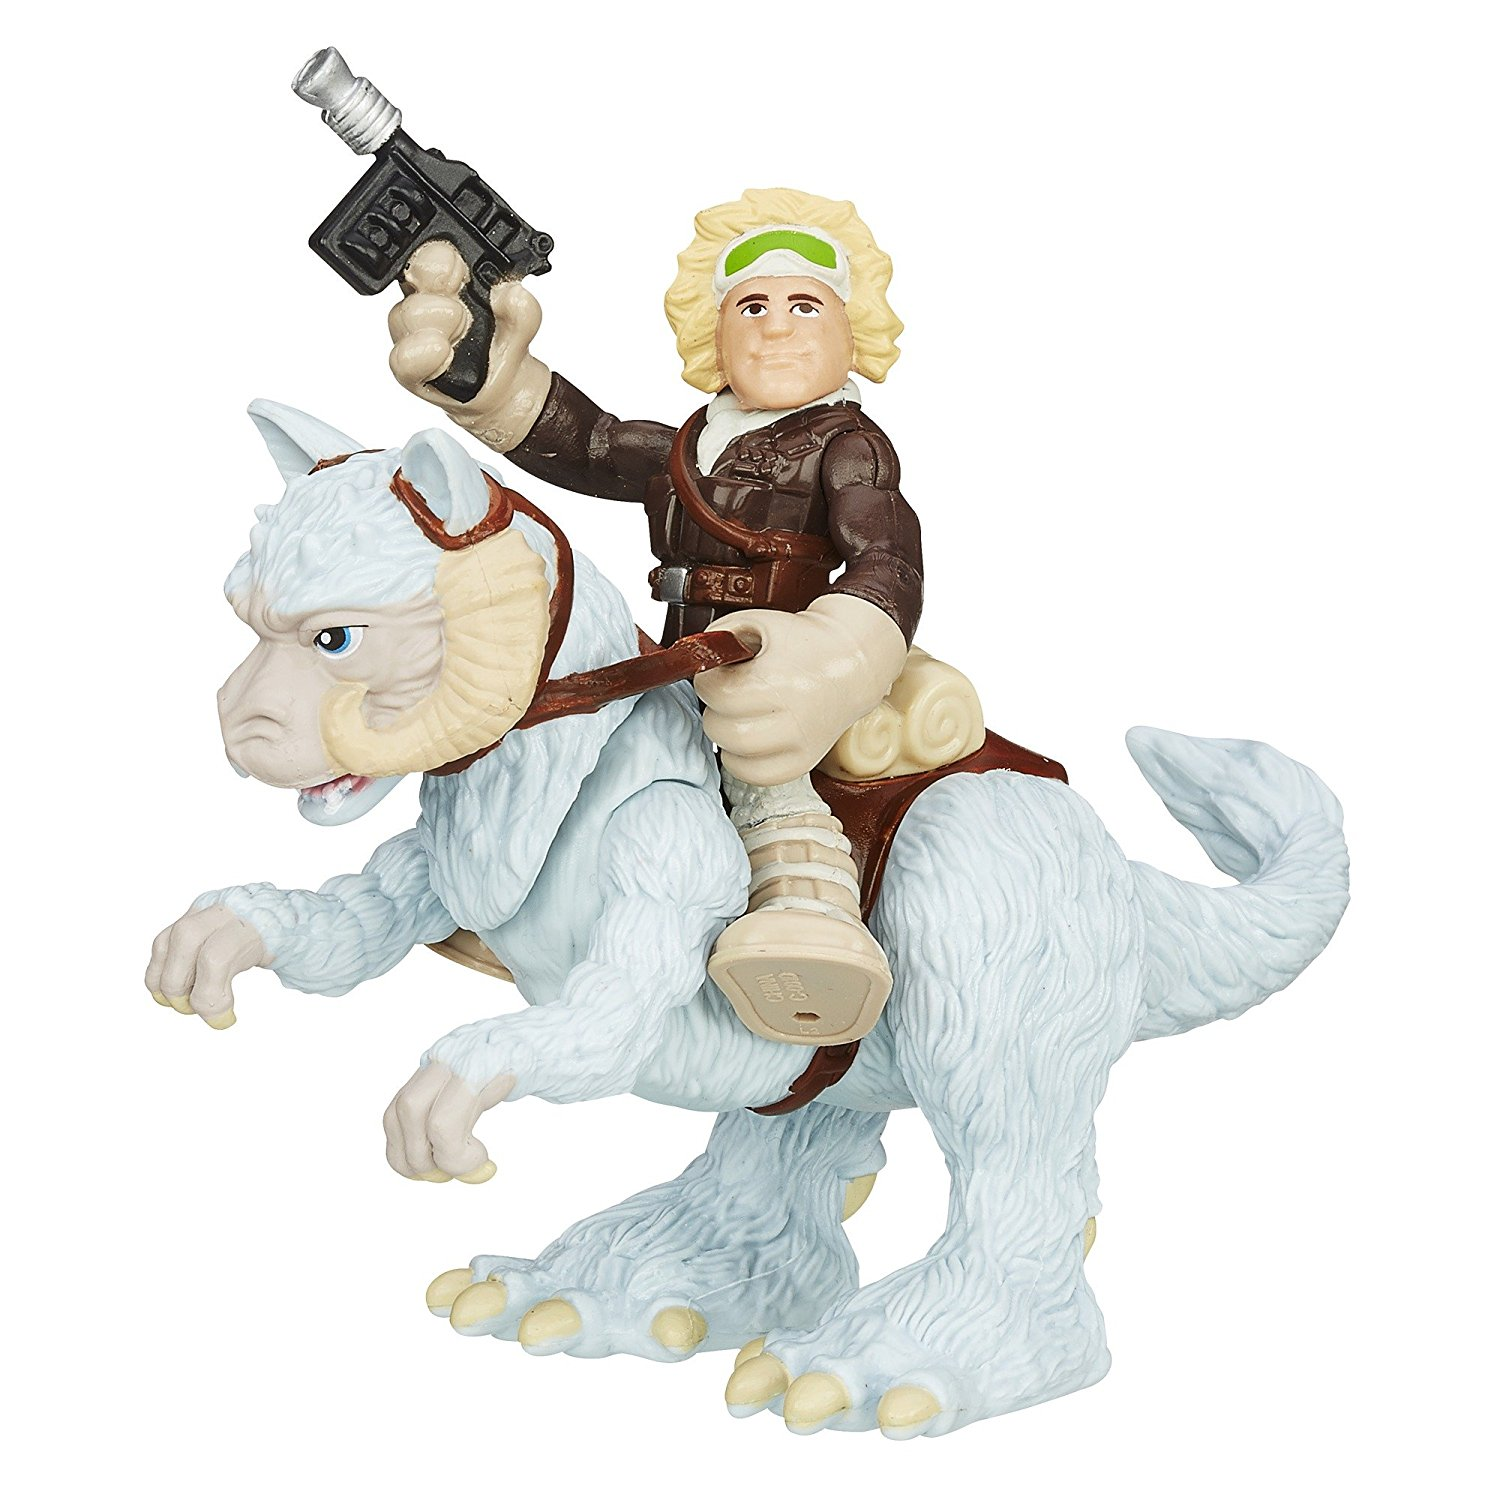 Heroes Star Wars Galactic Heroes Tauntaun and Han Solo..., By Playskool Ship from US by